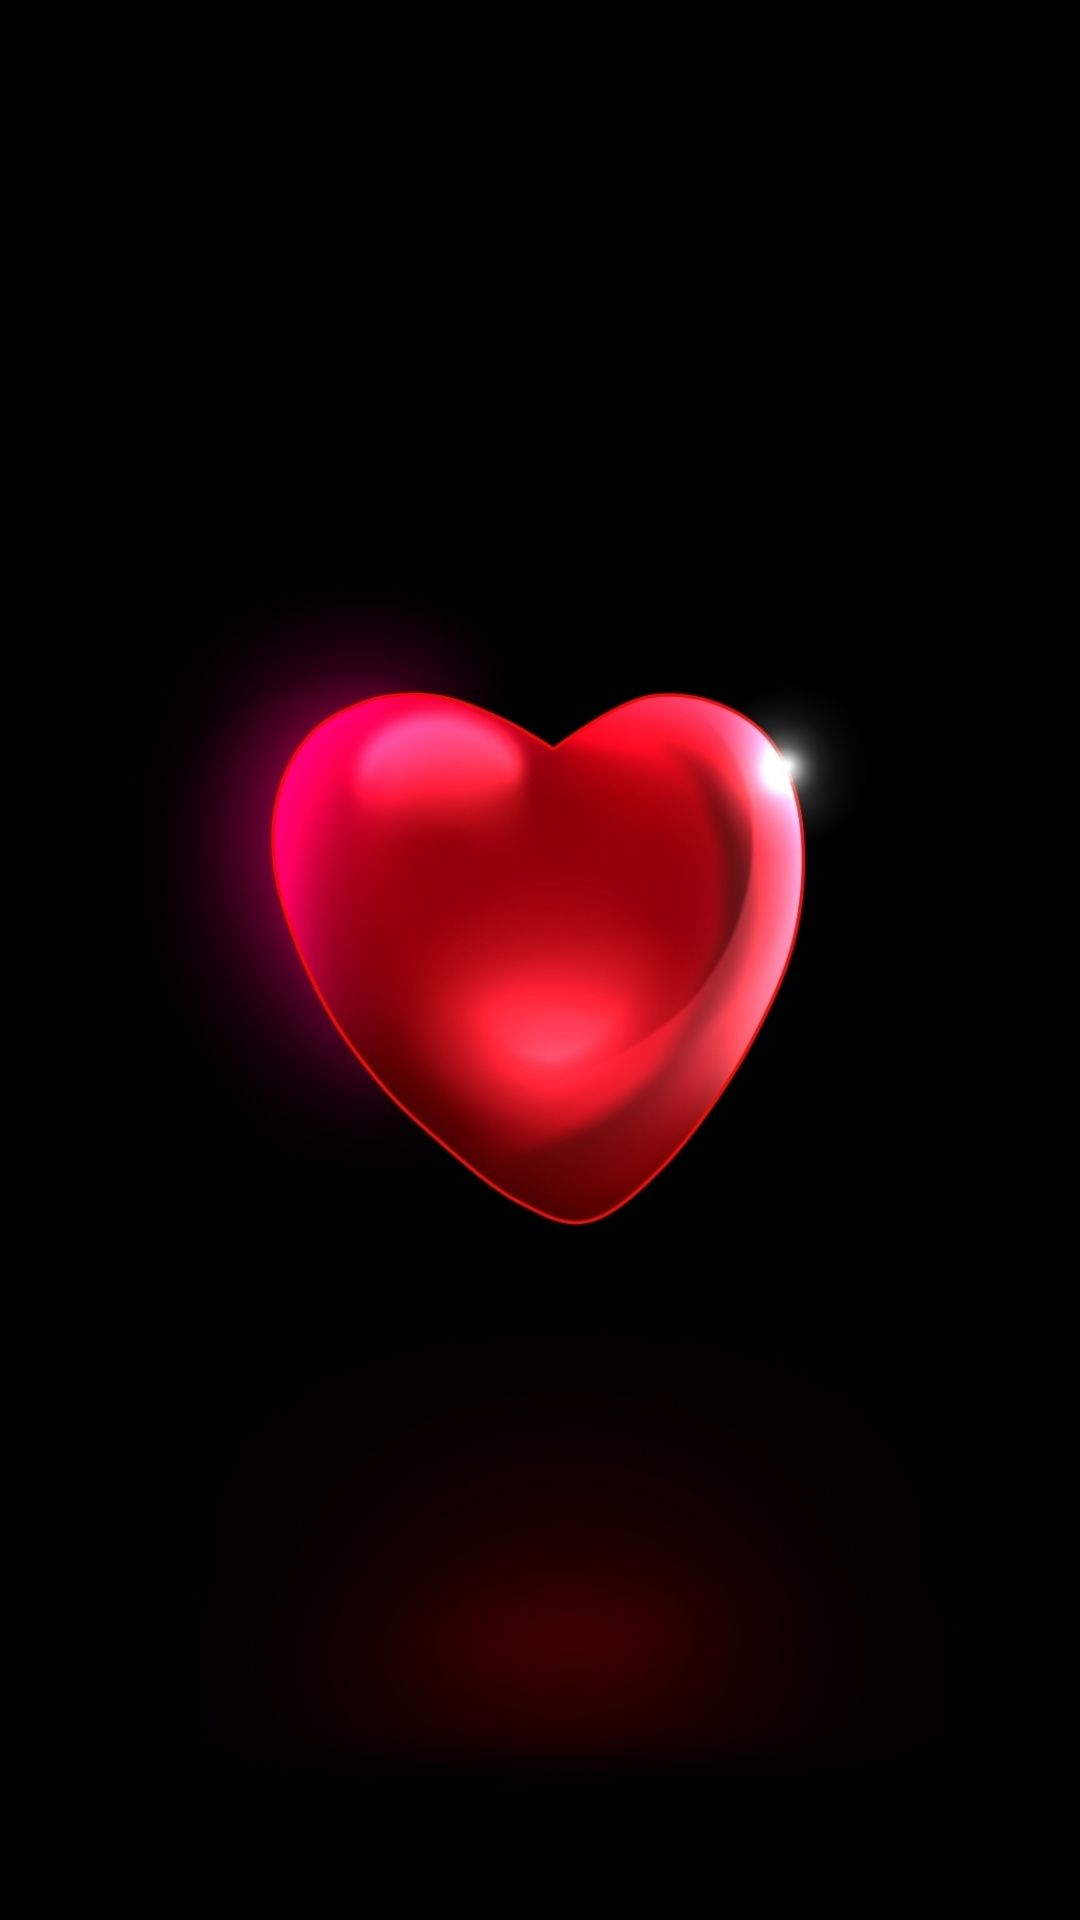 Minimal Red Heart 3d 1080x1920 Wallpaper Iphone Wallpaper